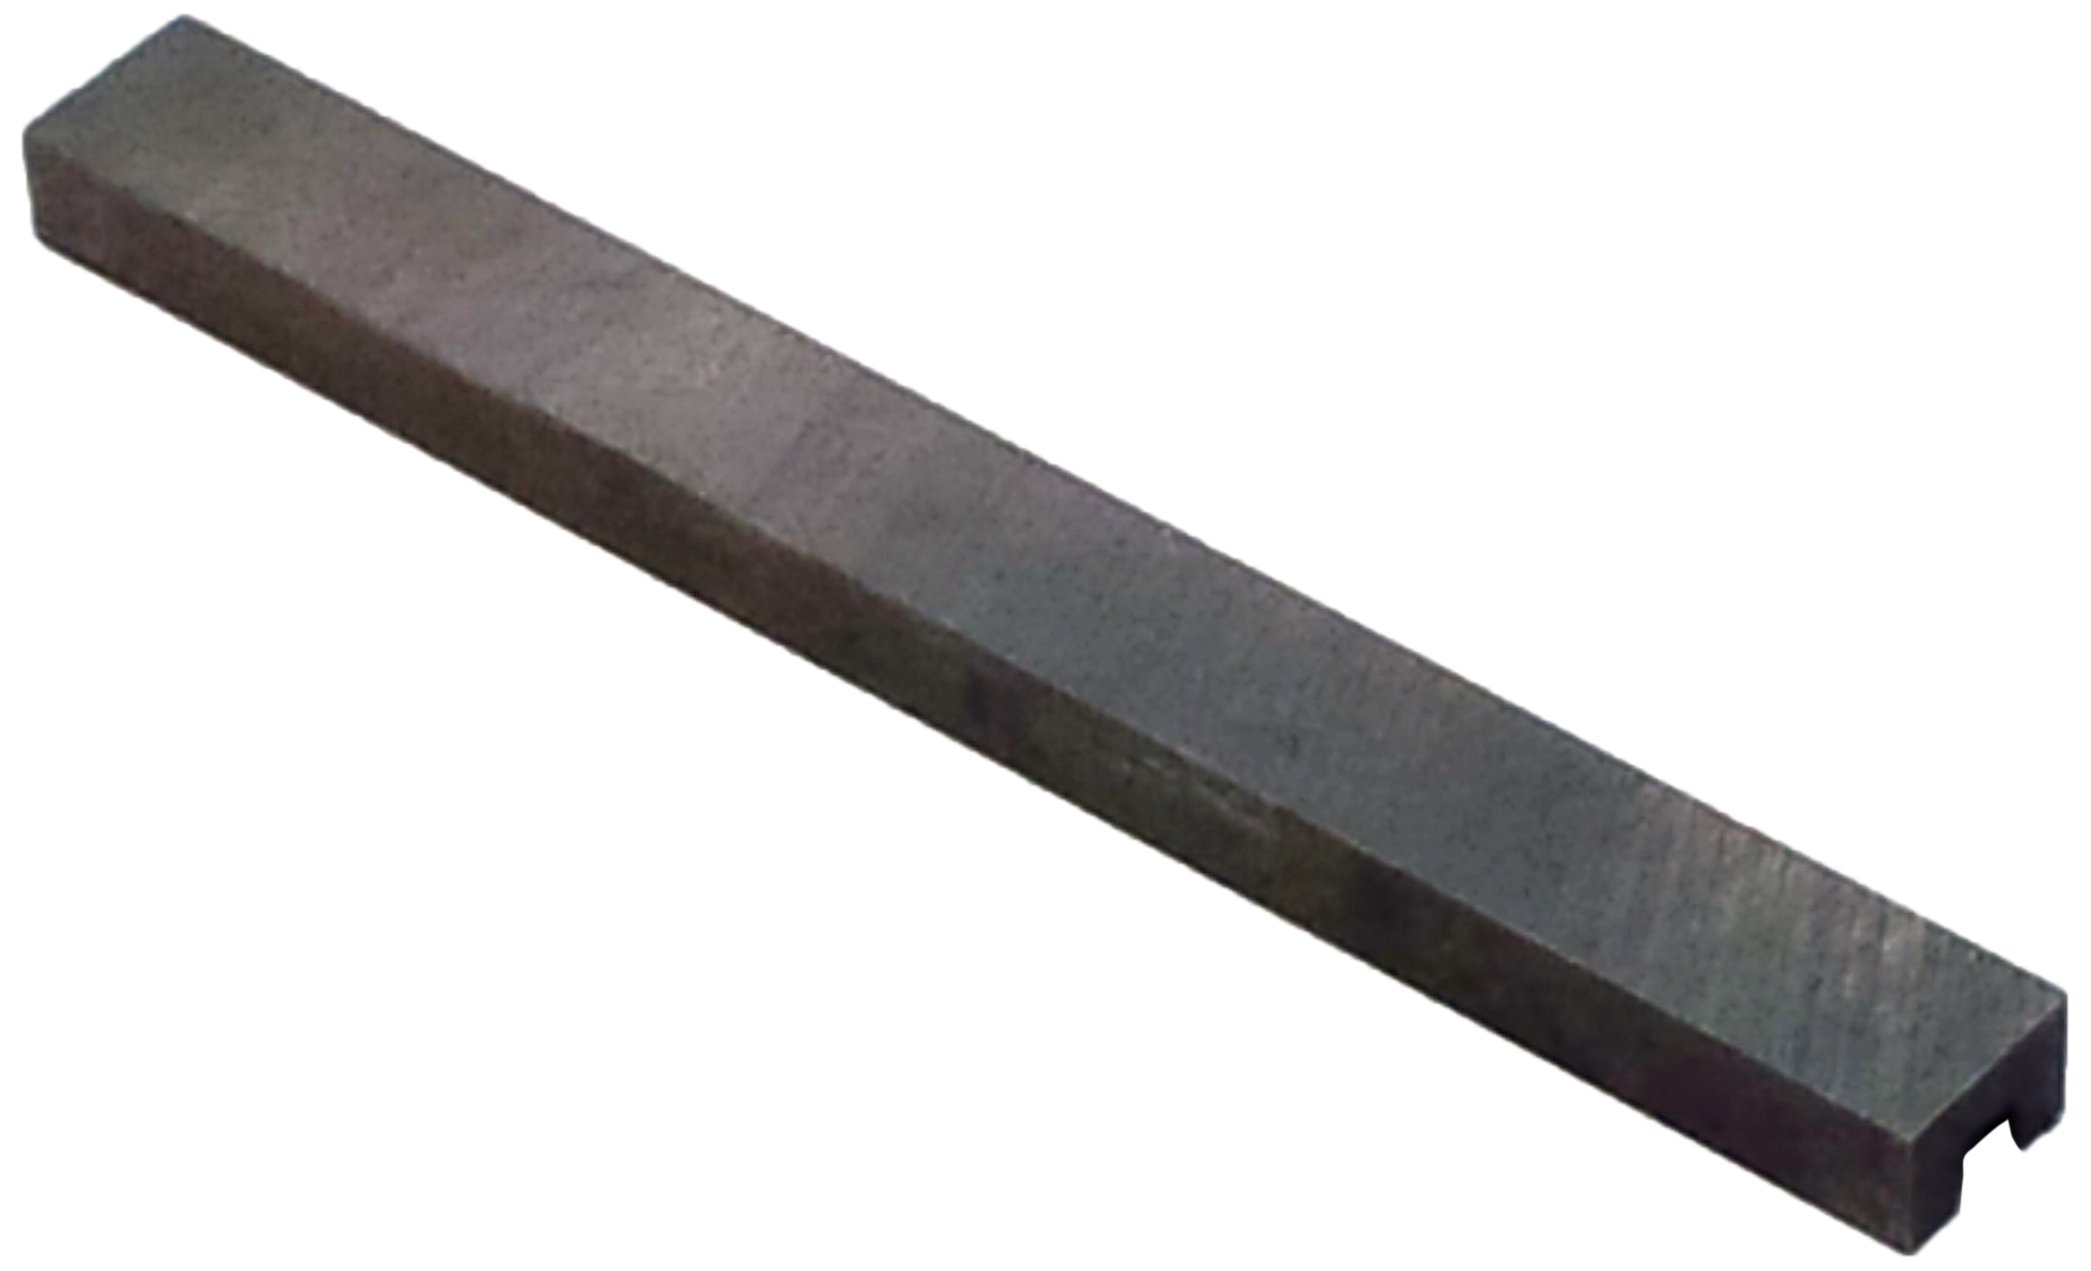 Eclipse Magnetics M19280NR Alnico Channel Bar Magnet, Maximum Pull of 64 lb